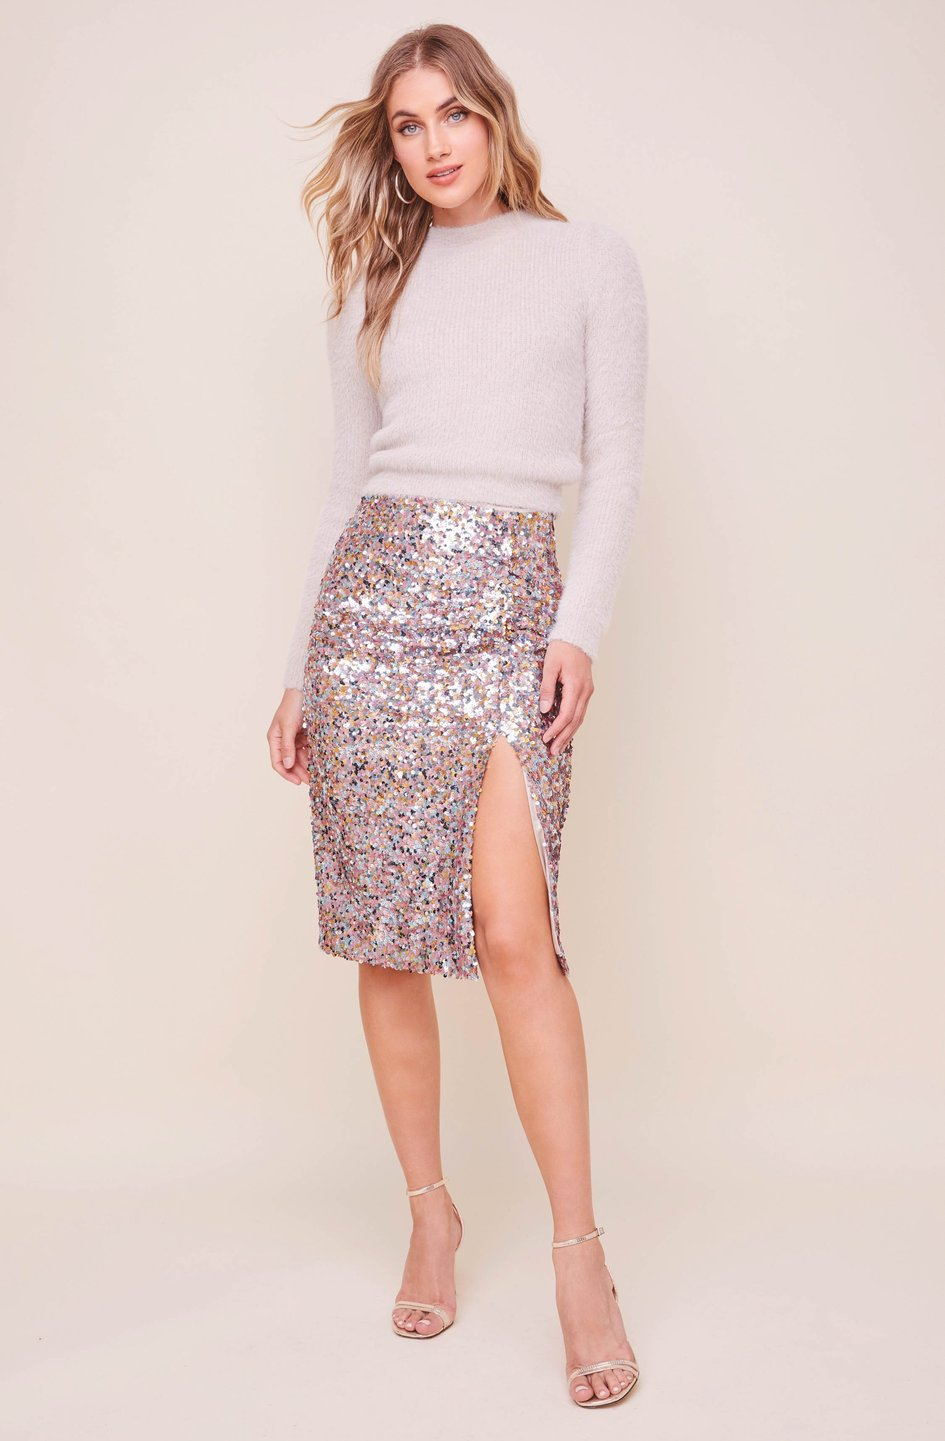 The Elaine Midi Skirt in Sequin